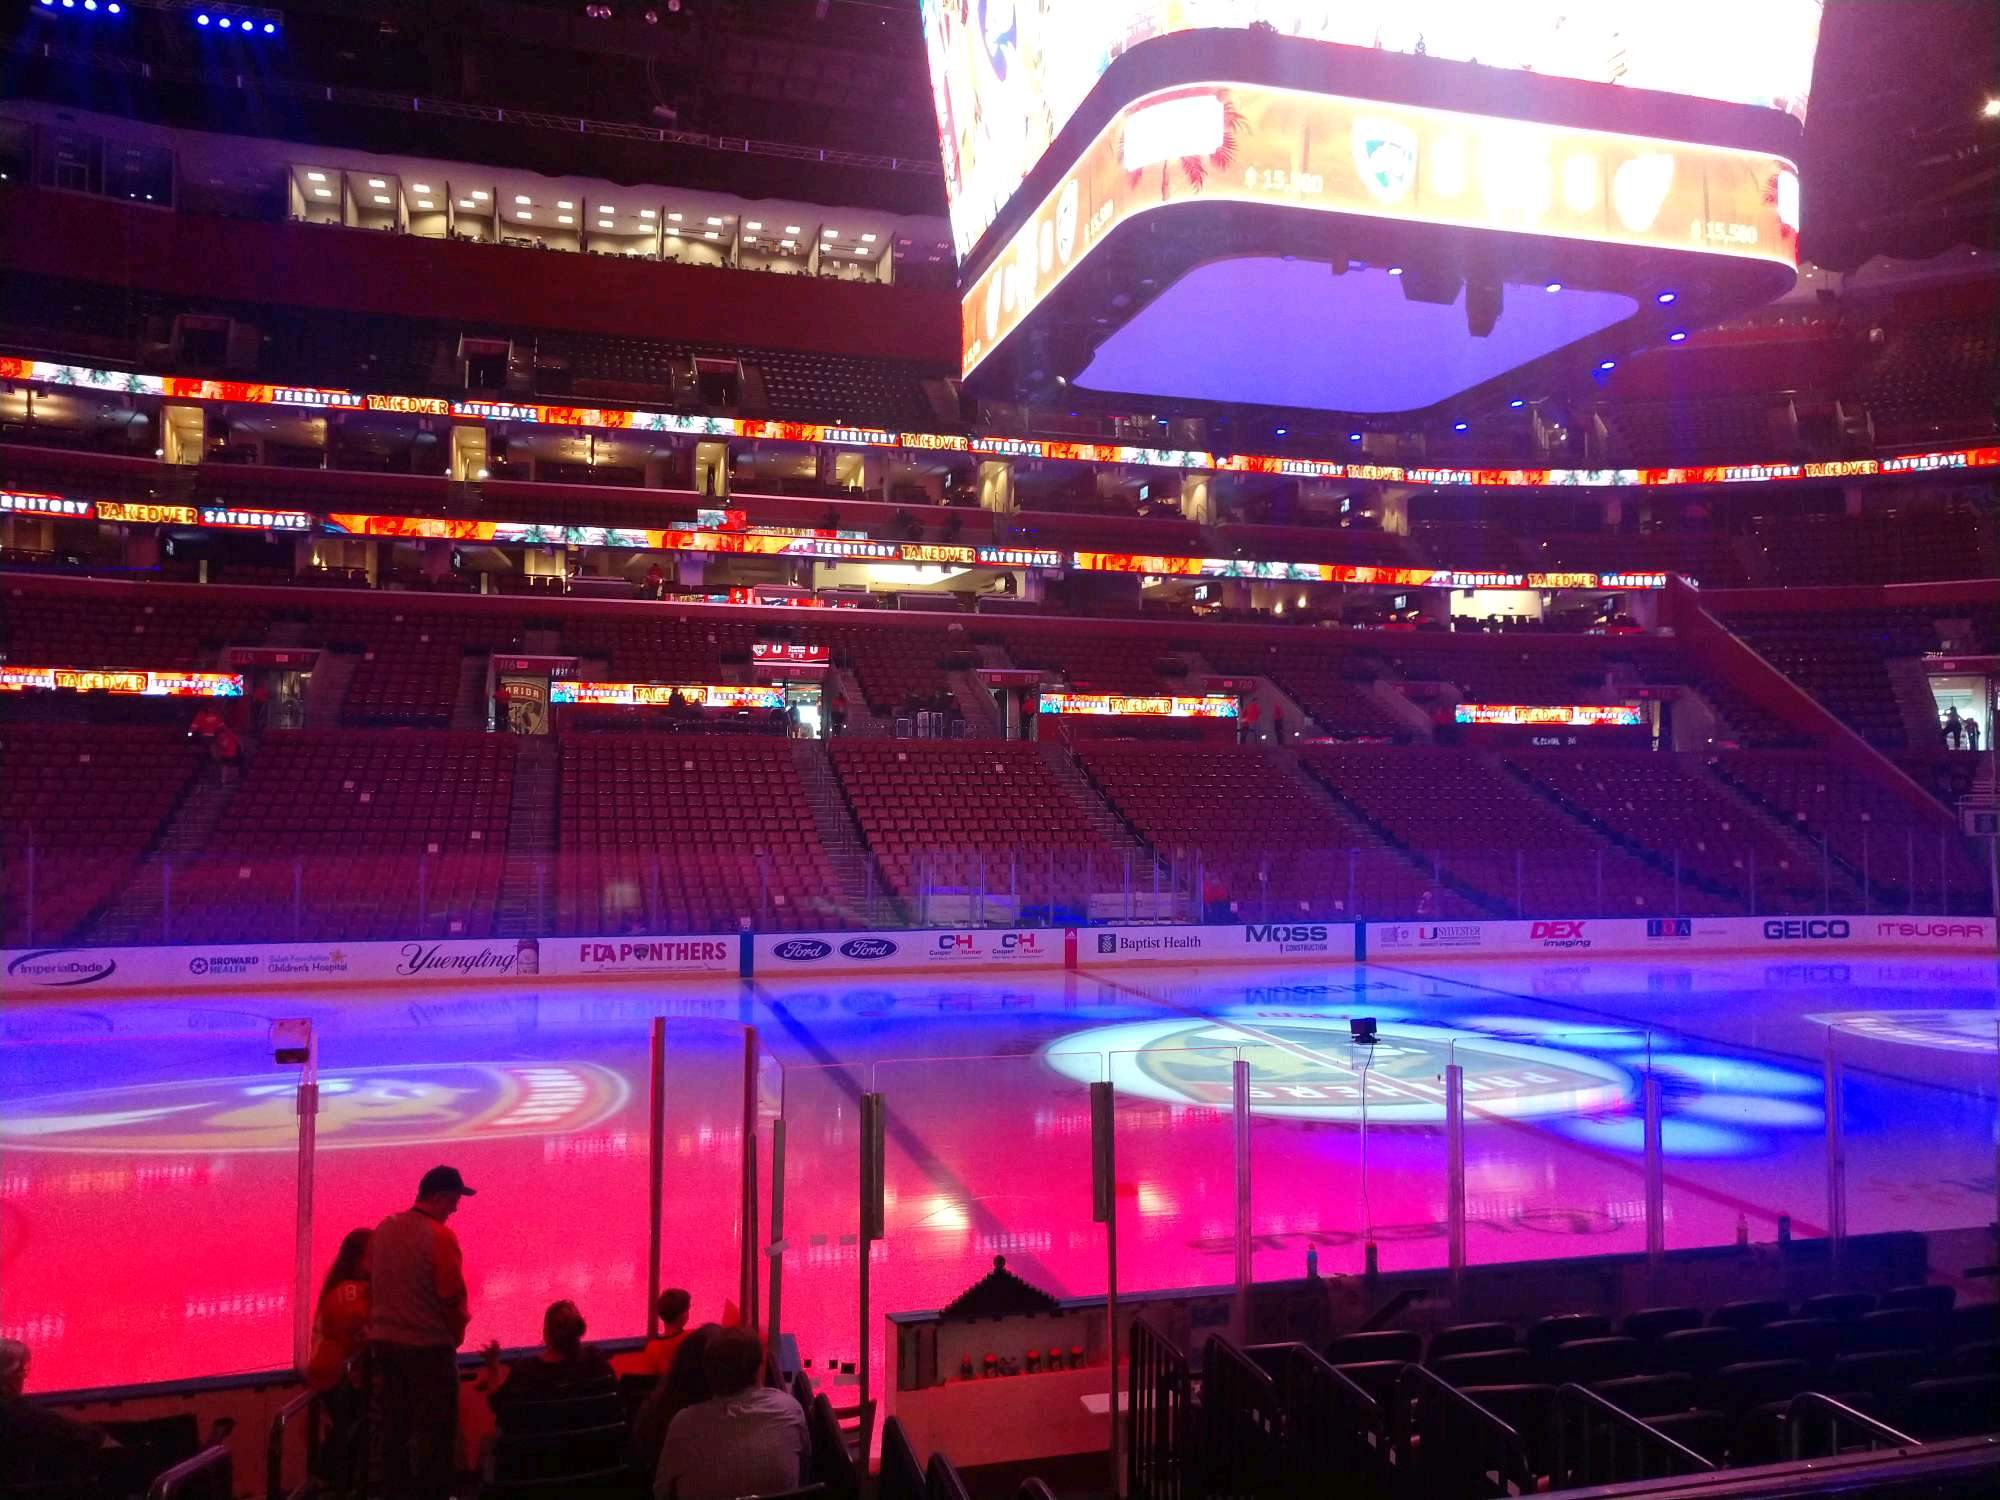 BB&T Center Section 102 Row 11 Seat 14